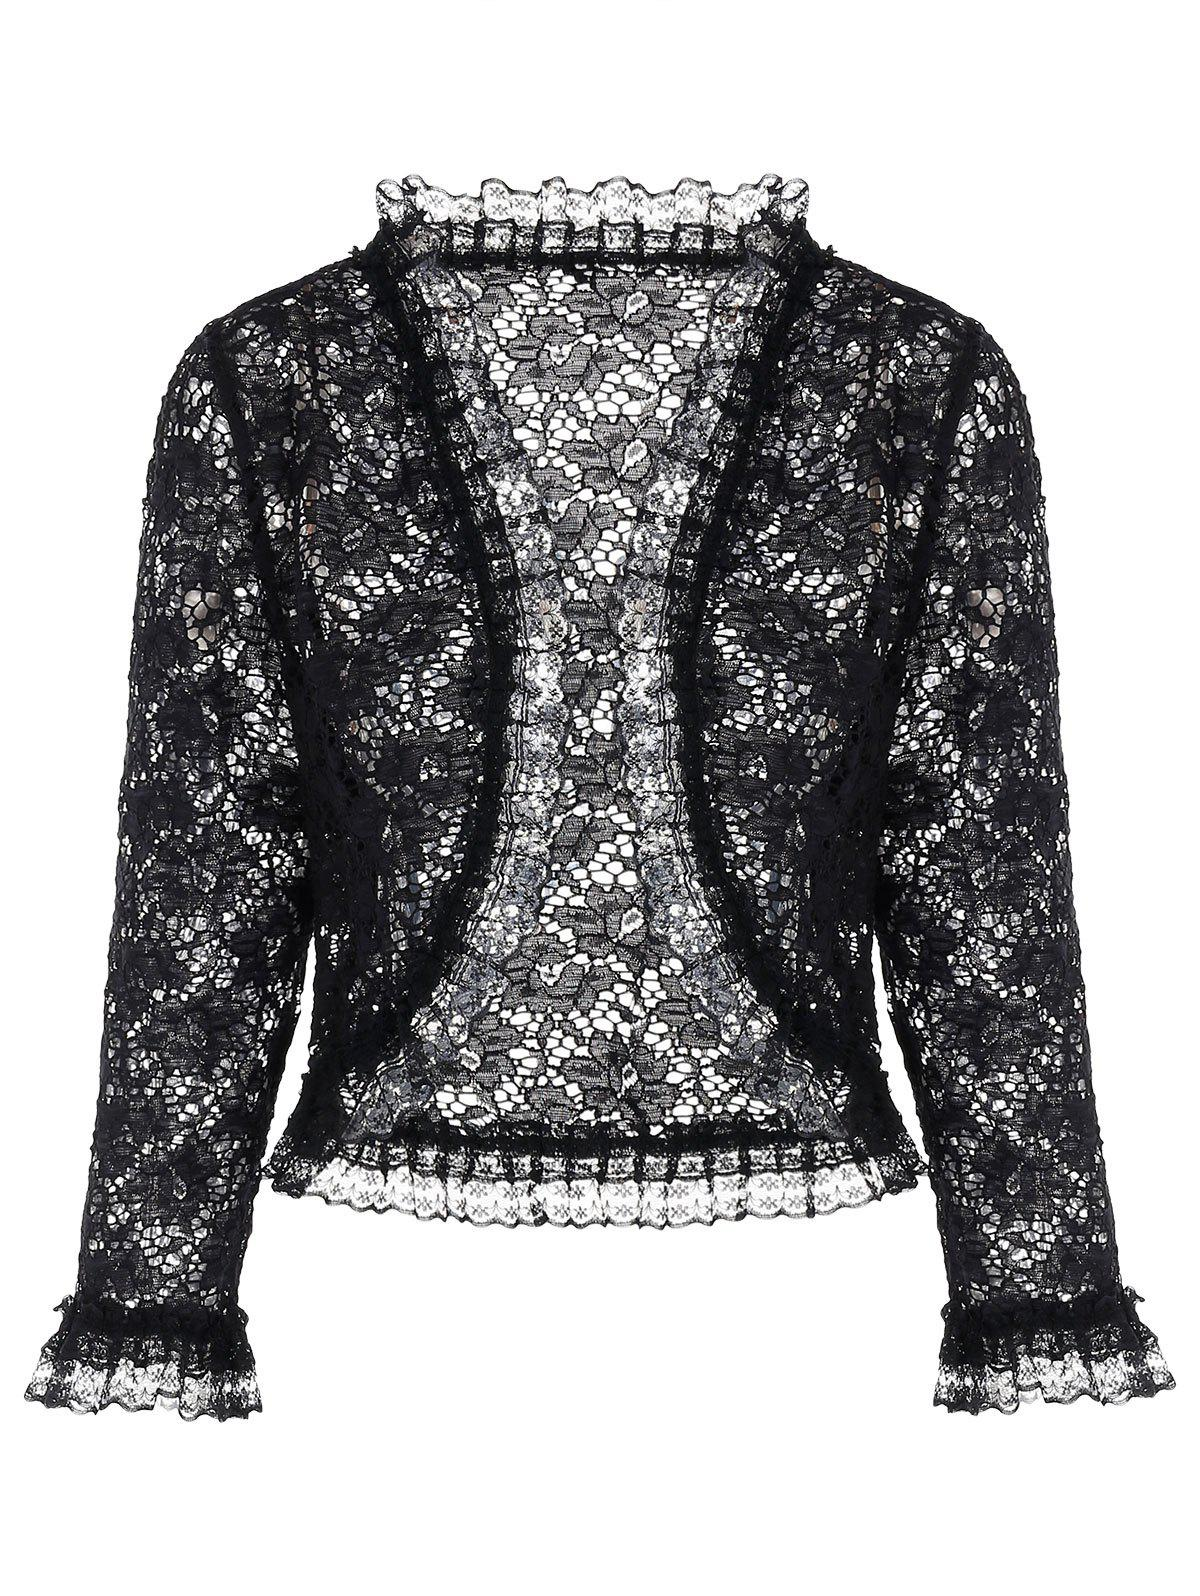 Plus Size Floral Lace Cape Coat - Noir L